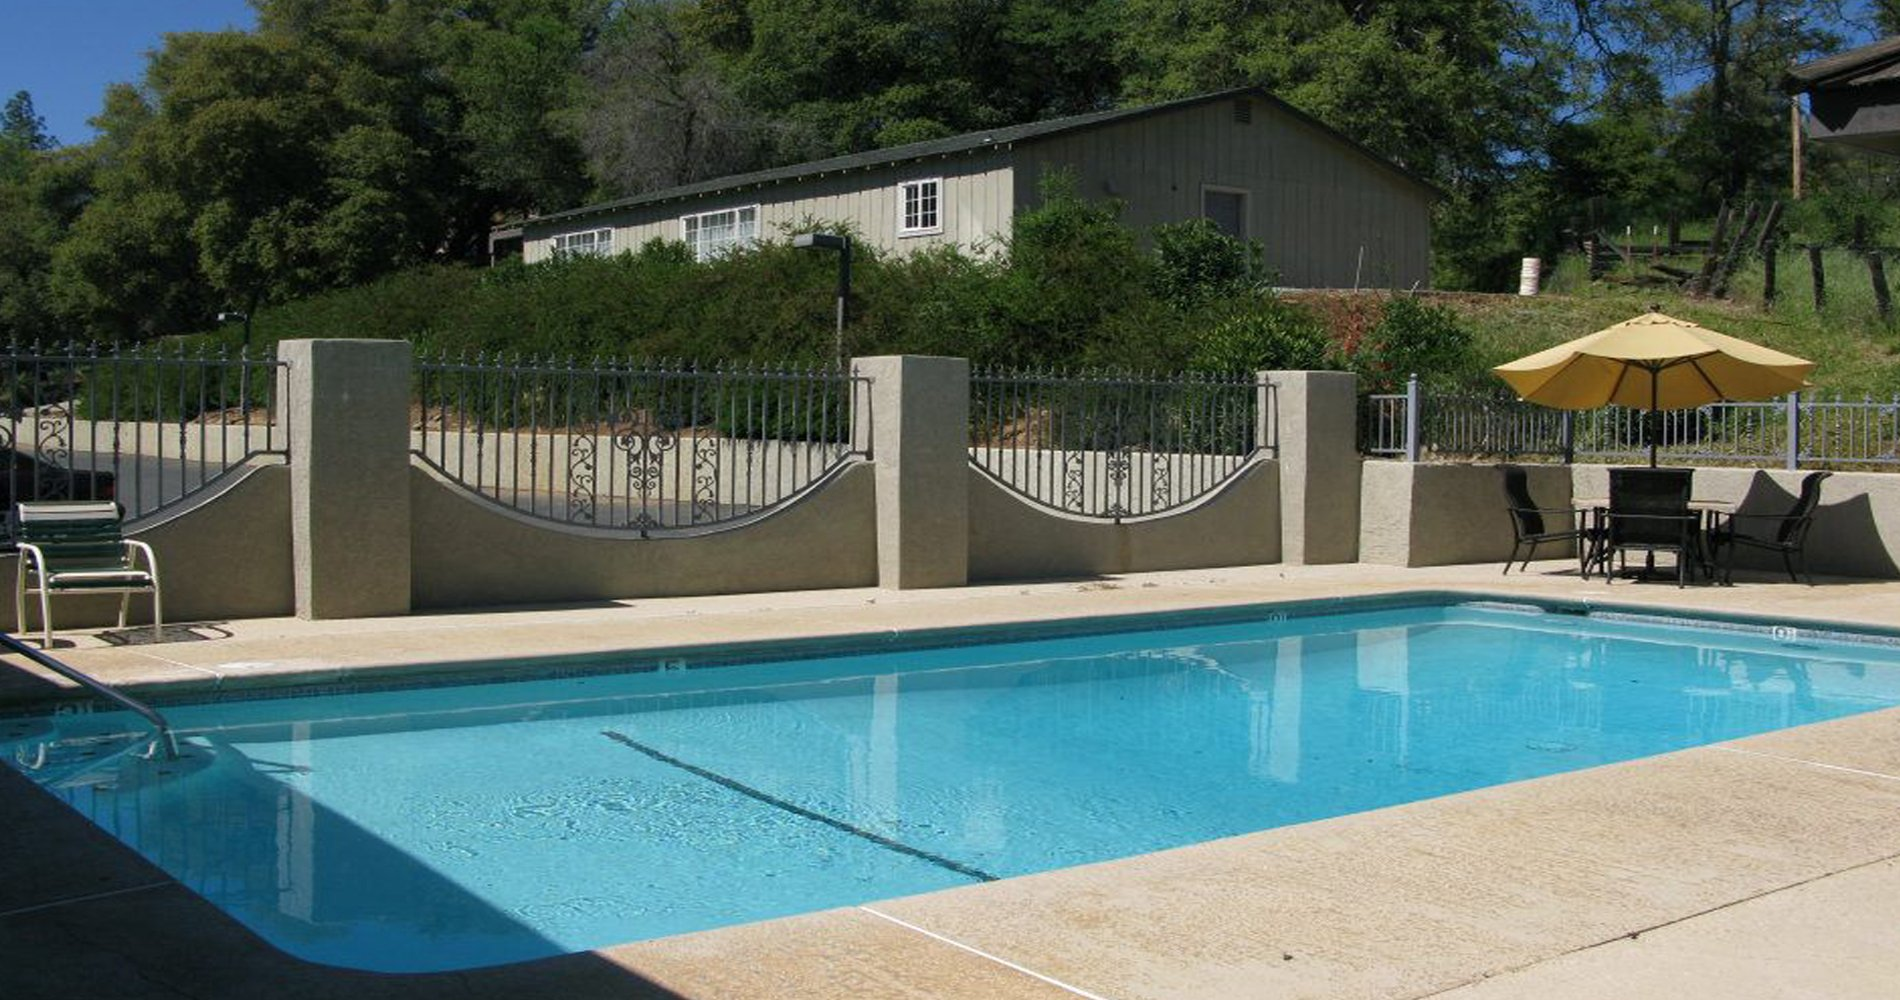 Soak Up The California Sun in Our Outdoor Pool